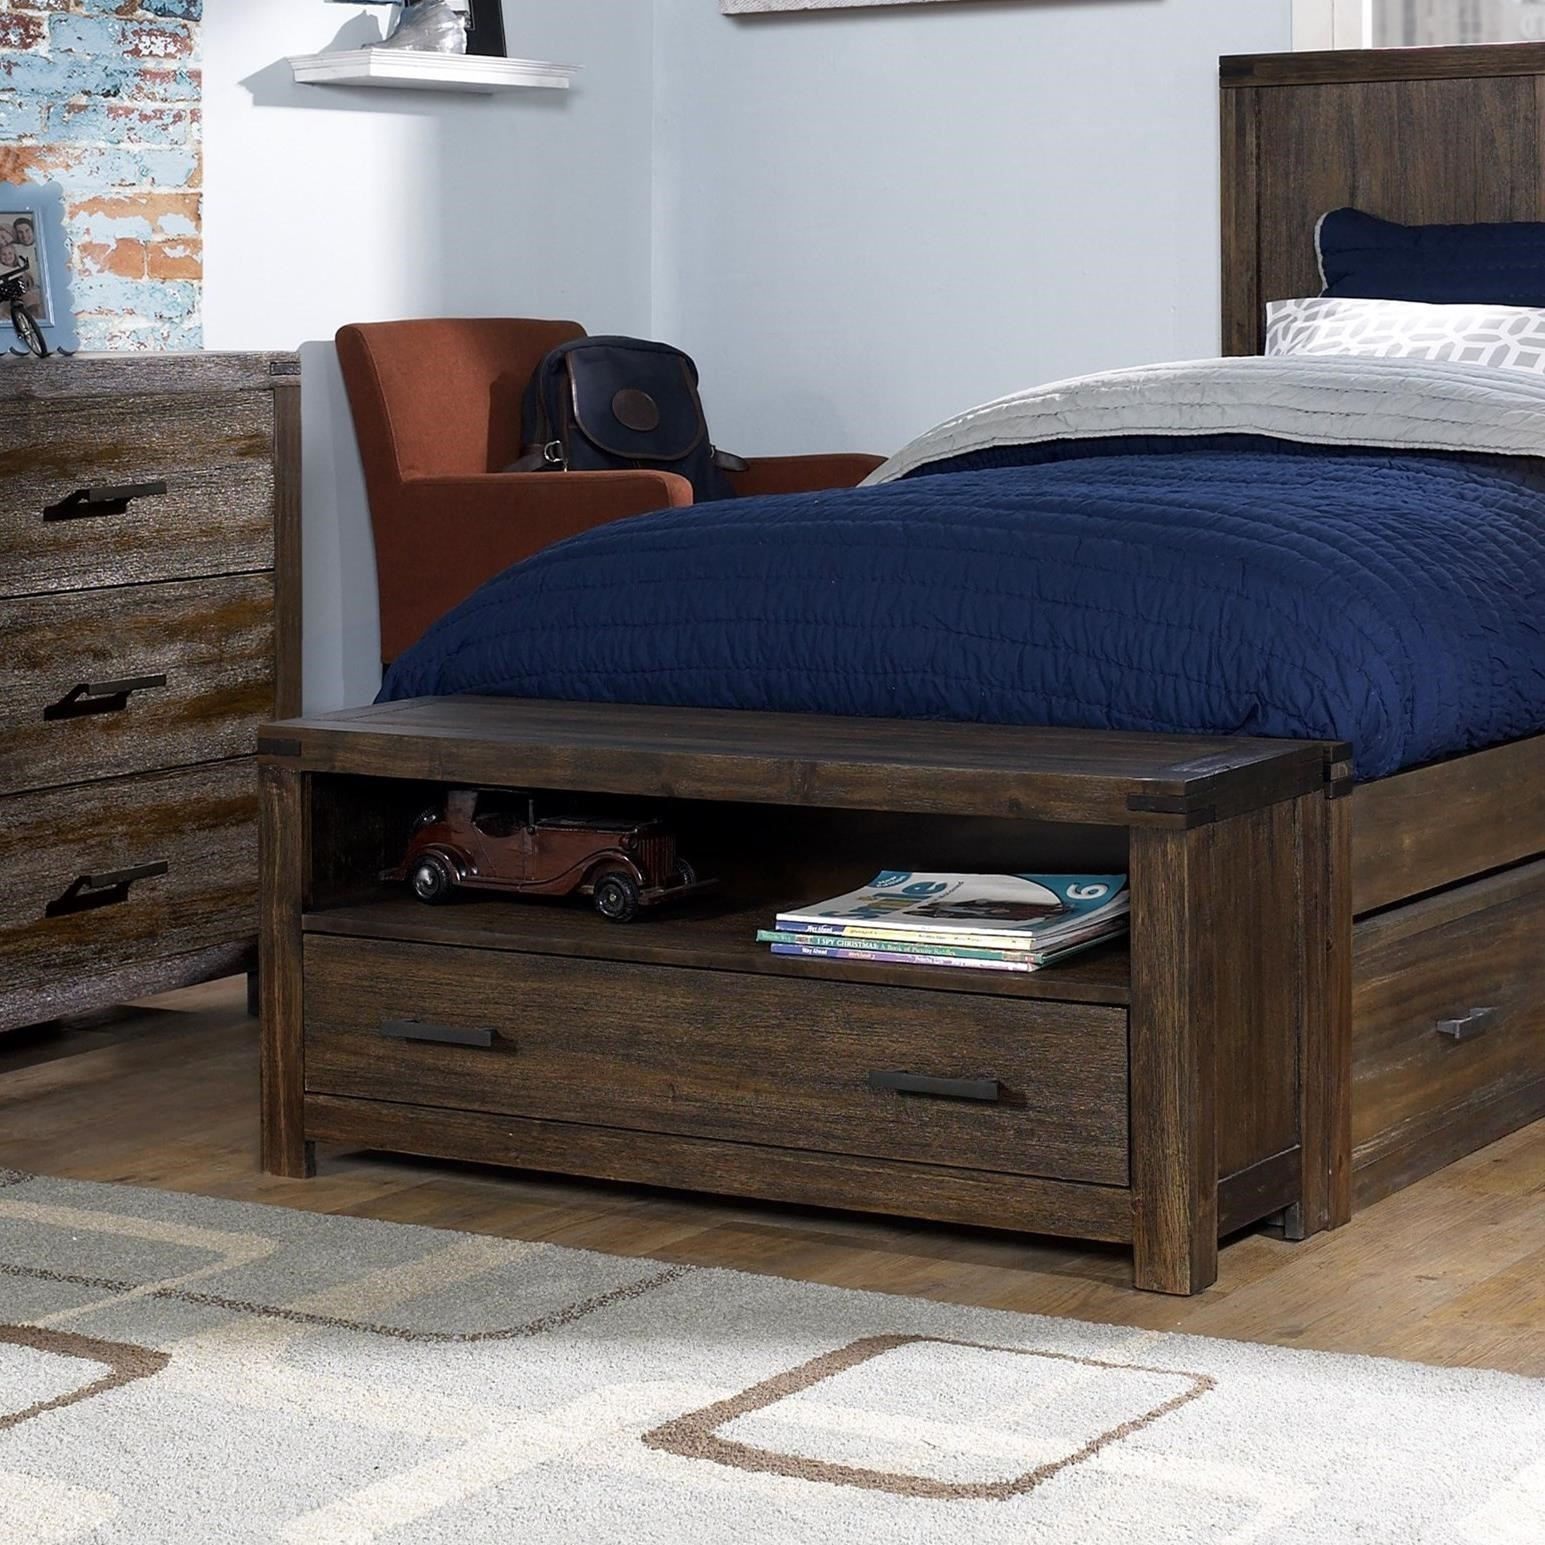 Pleasing Hillsdale St Croix Youth Bed End Storage Bench Novello Camellatalisay Diy Chair Ideas Camellatalisaycom